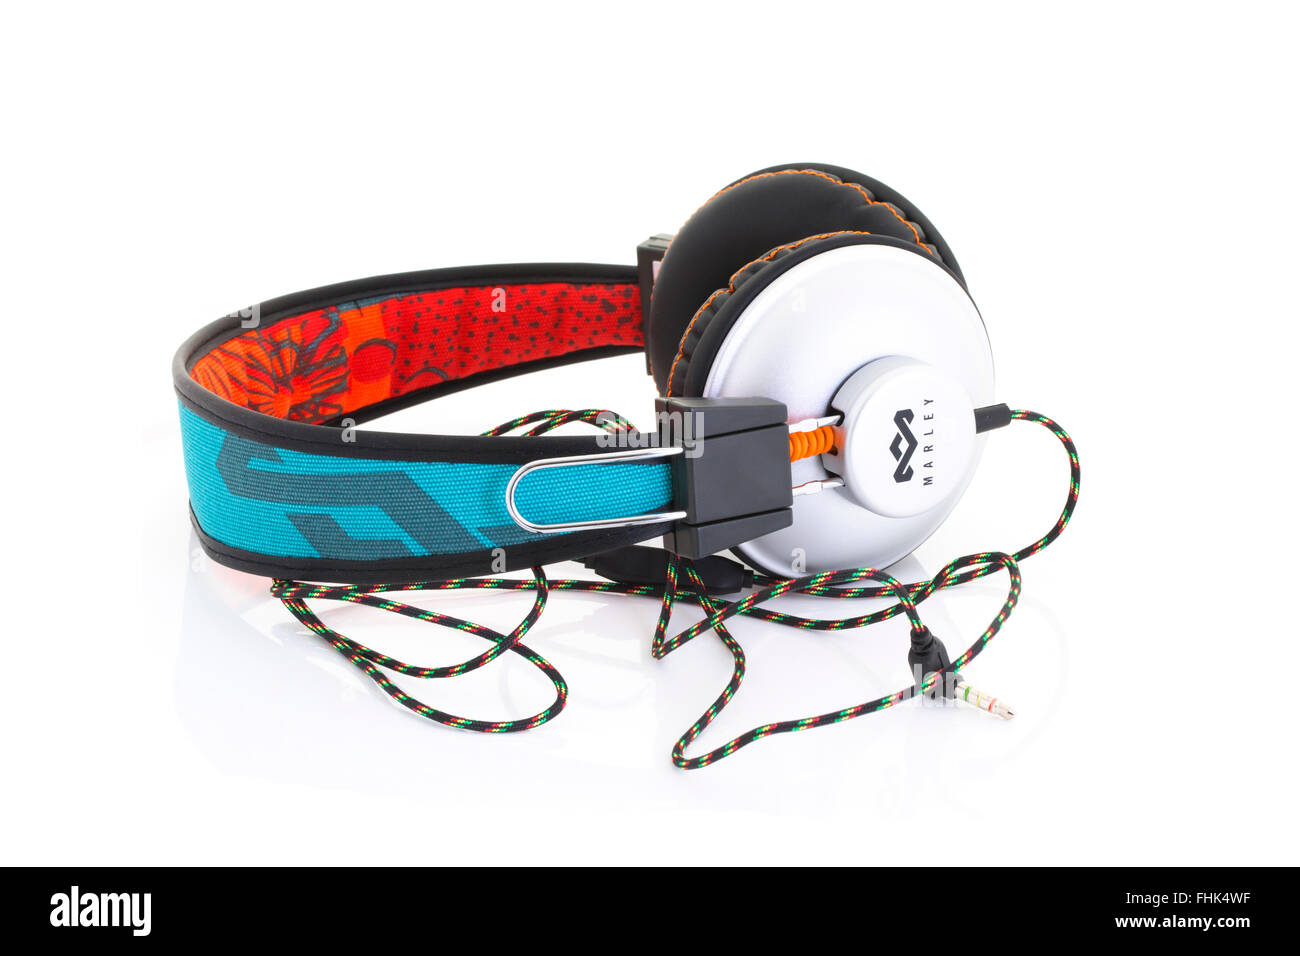 Marley And Me Stock Photos Images Alamy Headset Wiring Diagram Headphones On A White Background Image